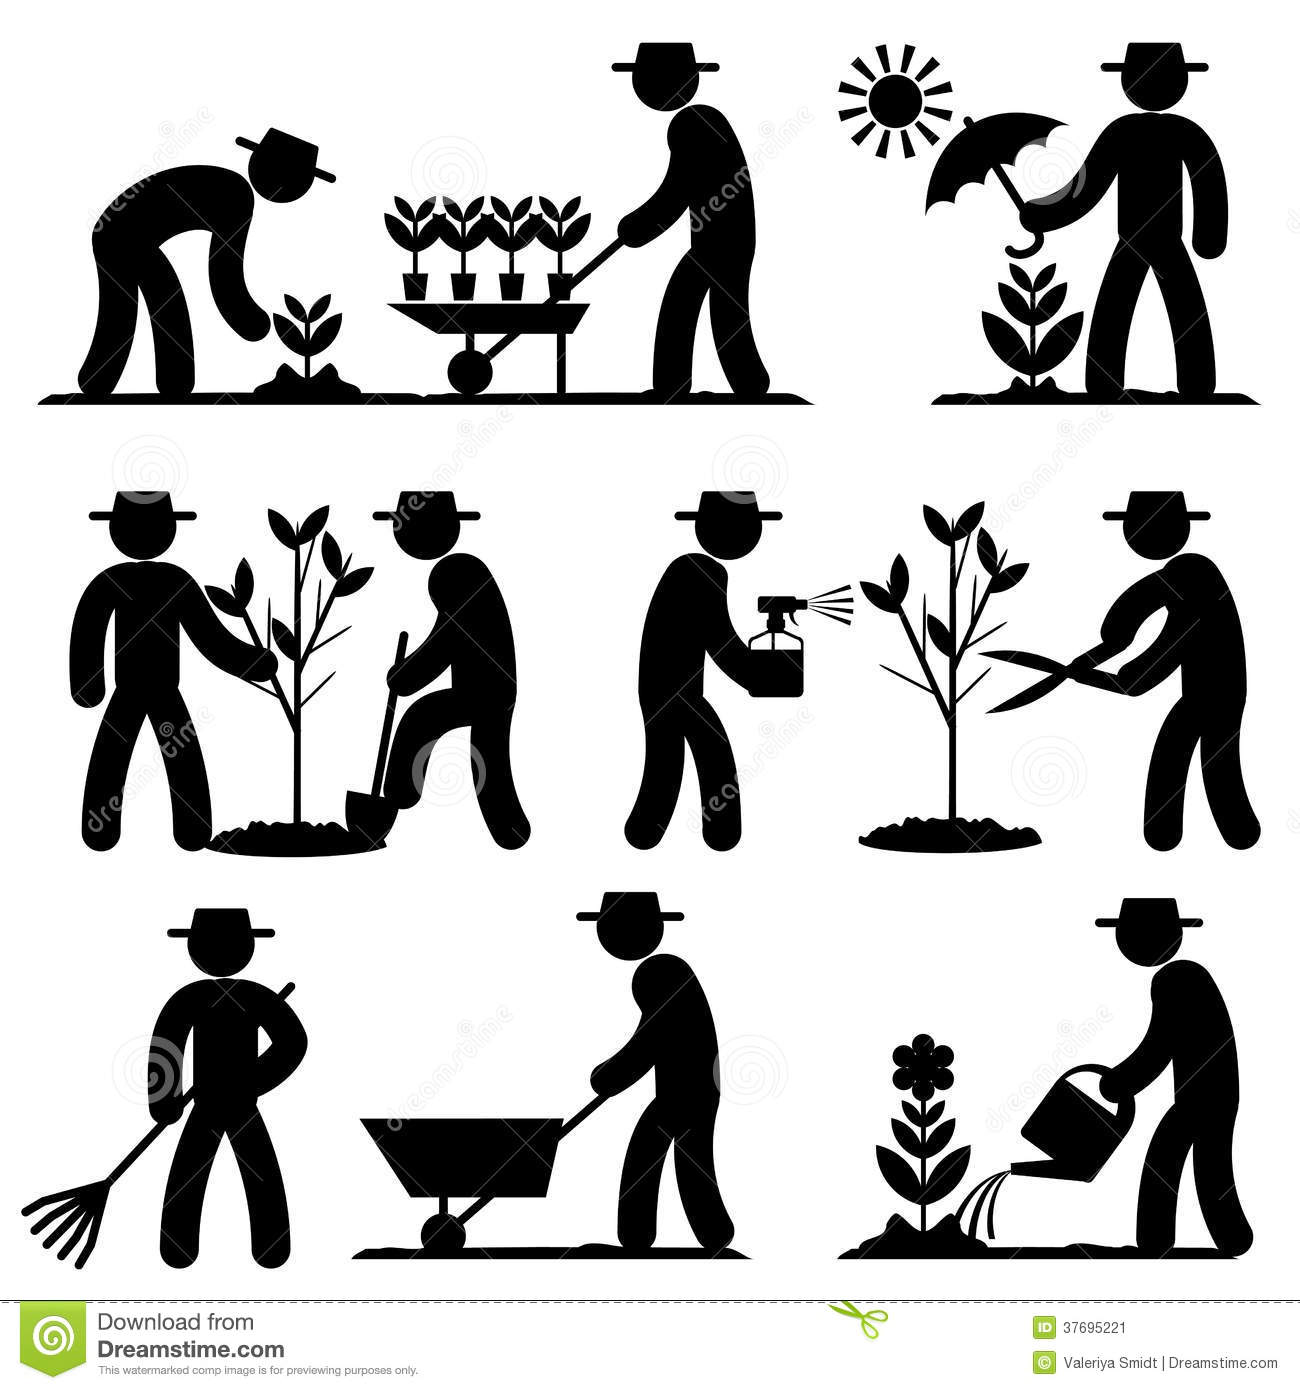 More similar stock images of ` Agro people icons `